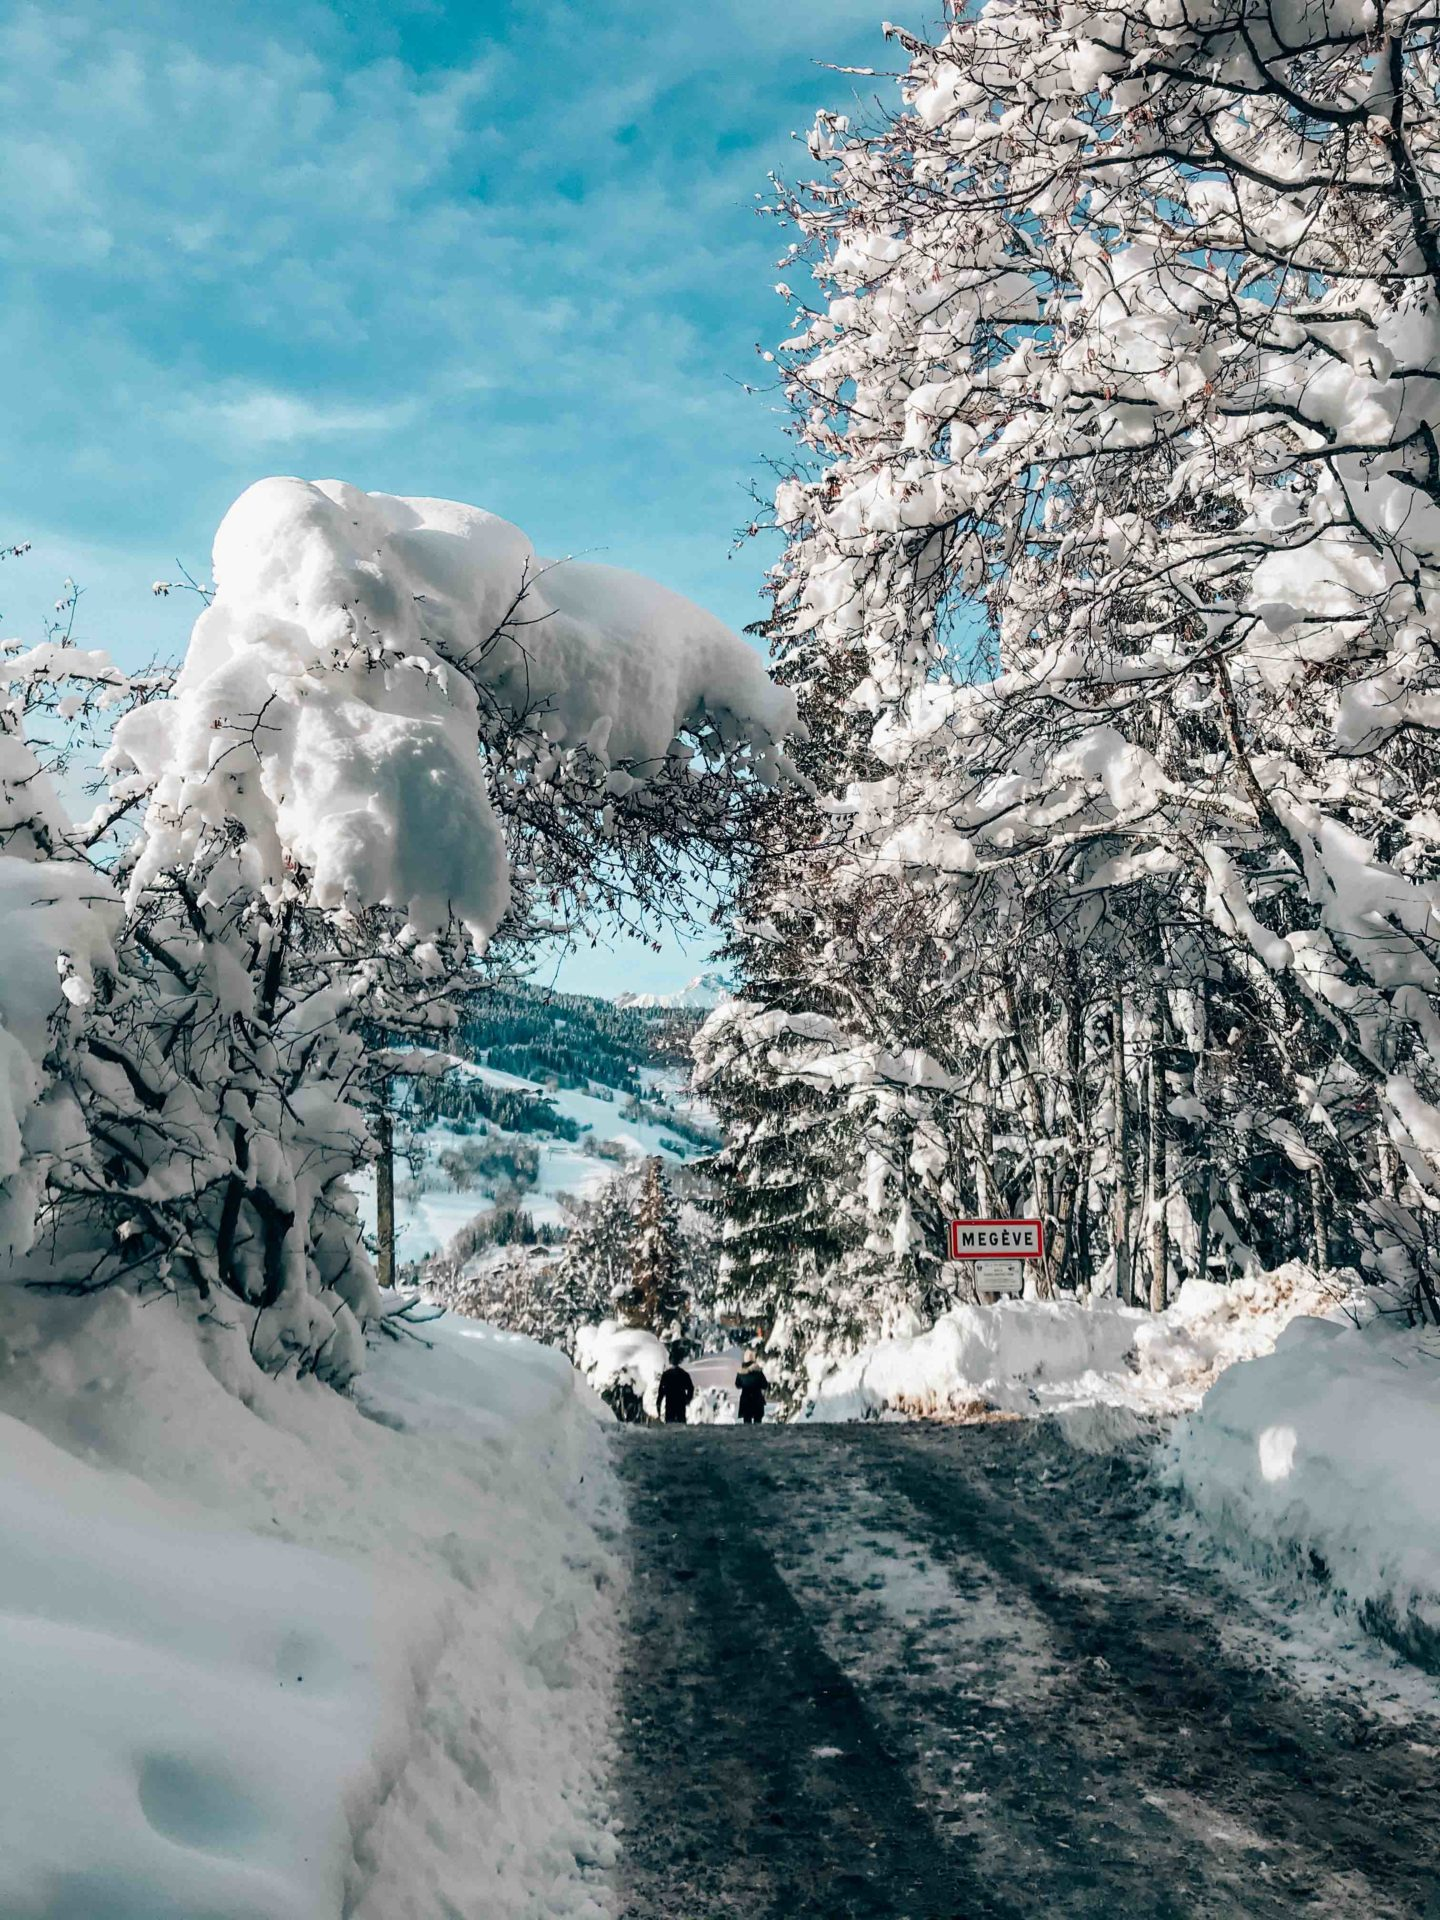 Megeve roads covered in snow